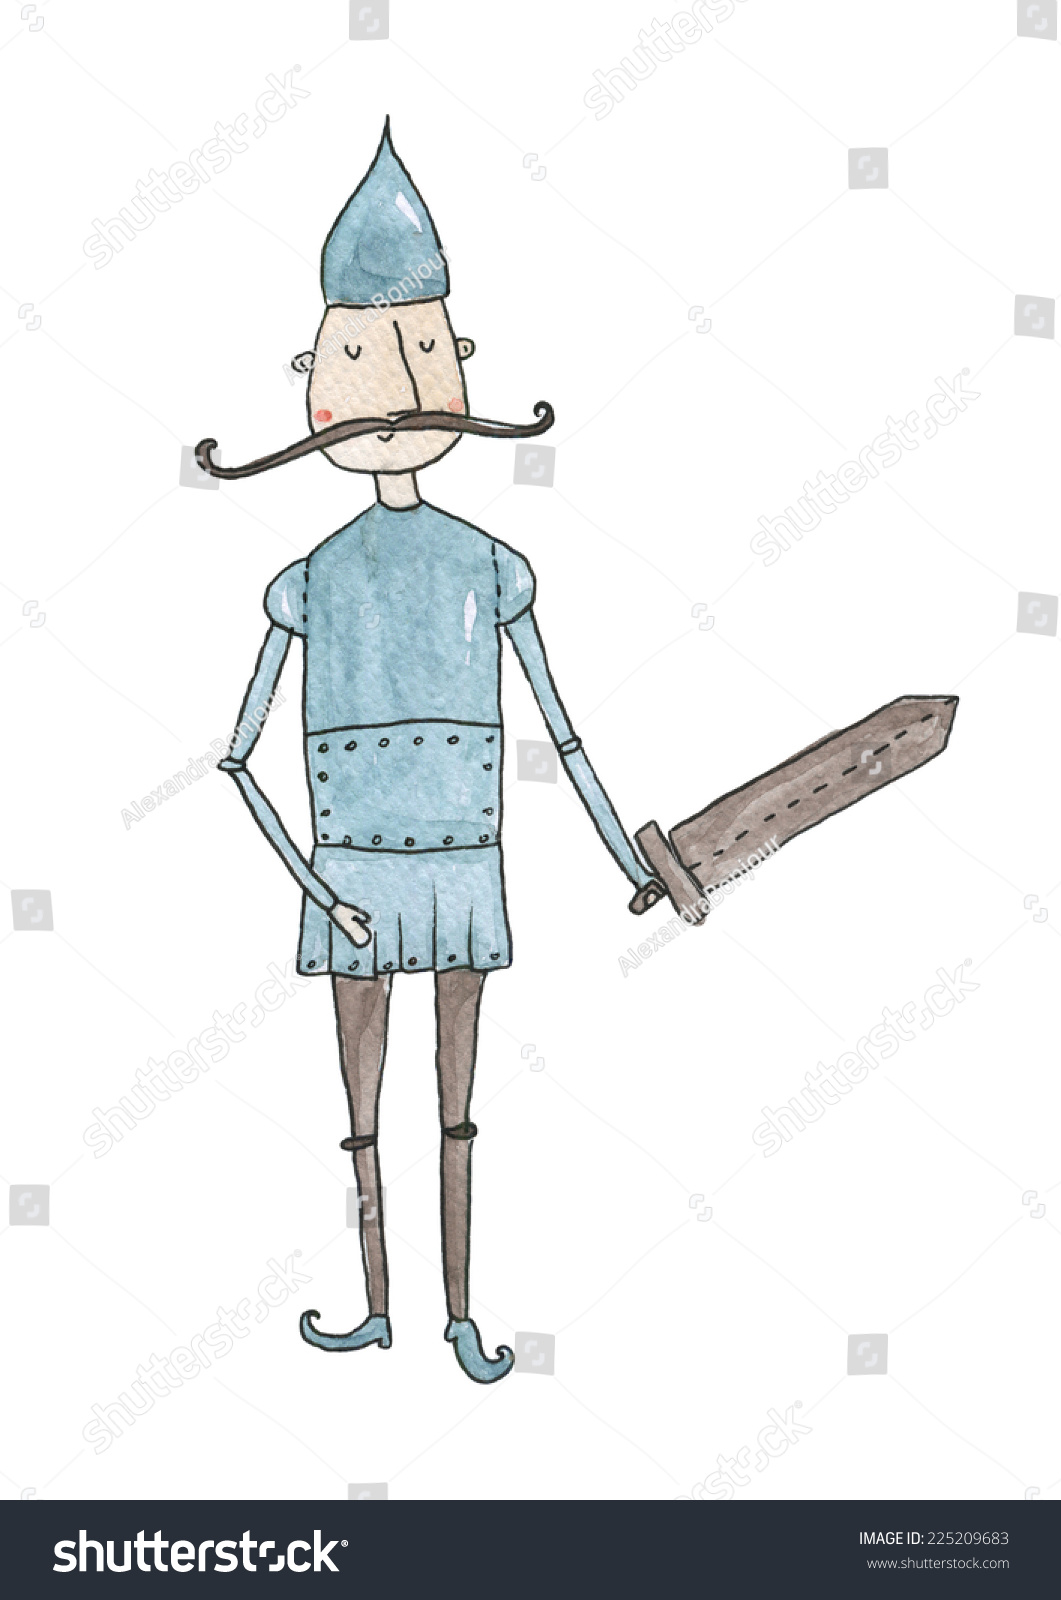 Knight Watercolor Stock Illustration 225209683 - Shutterstock